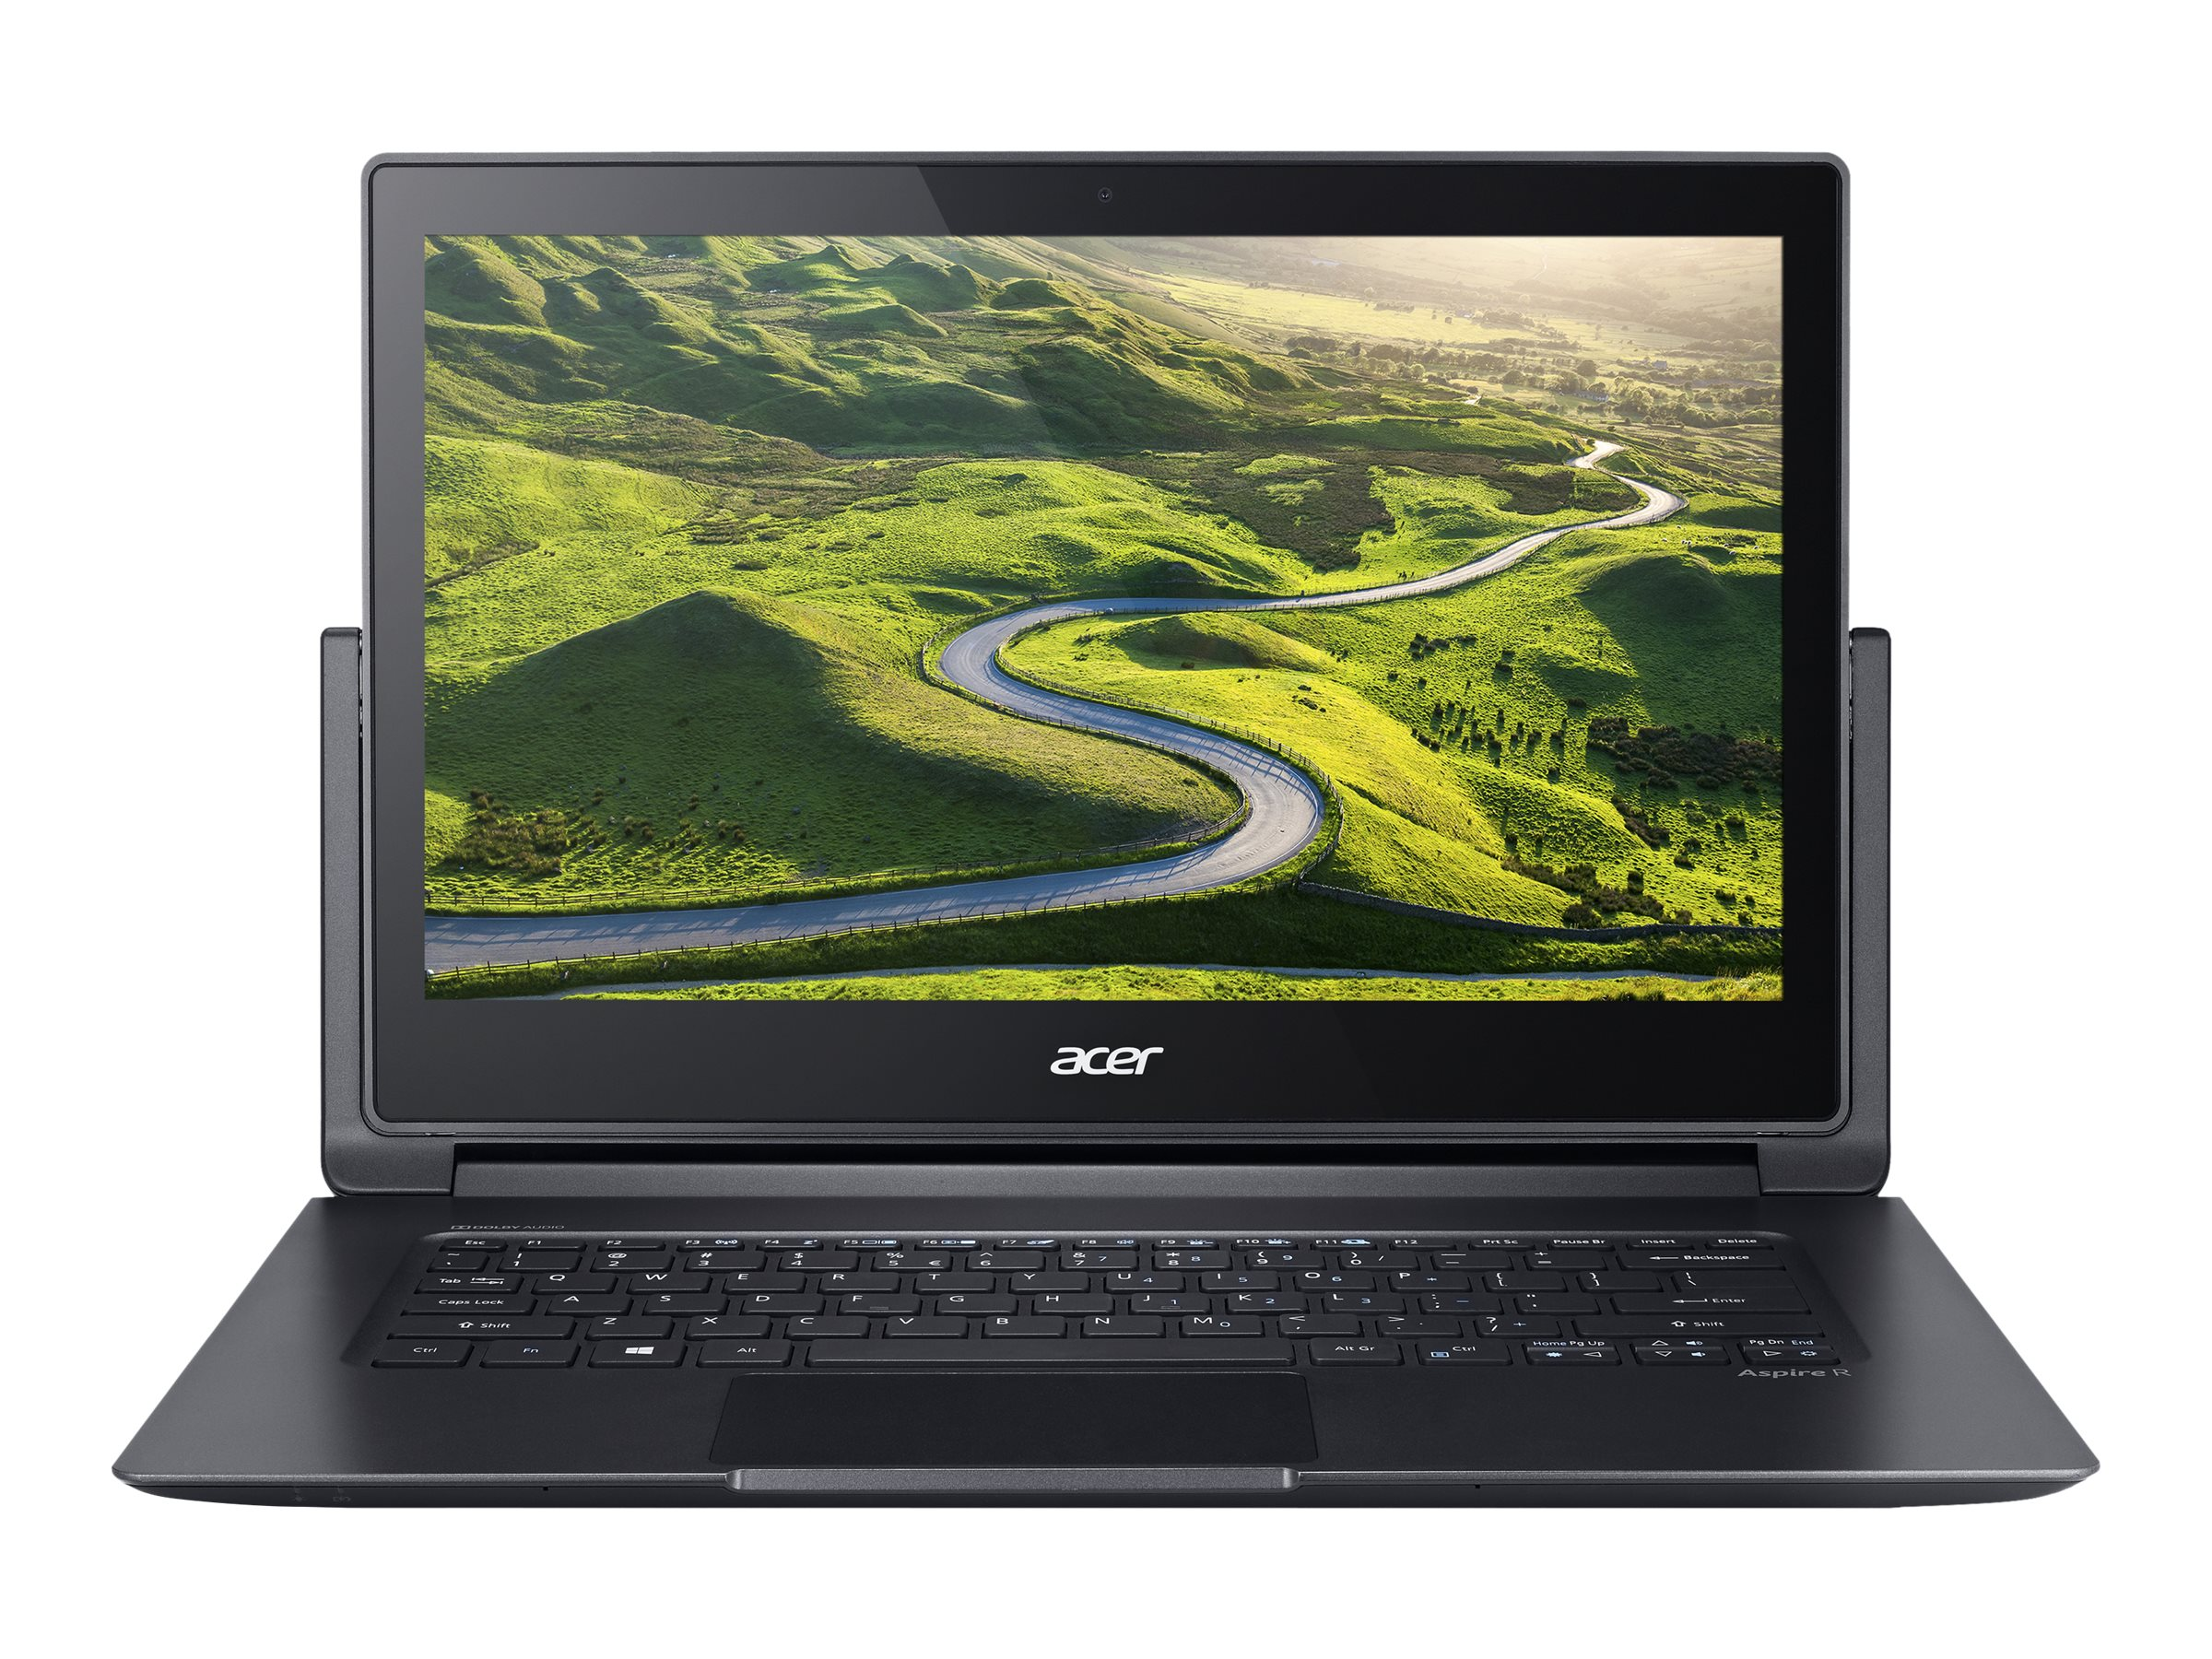 Acer NX.G8TAA.002 Image 6